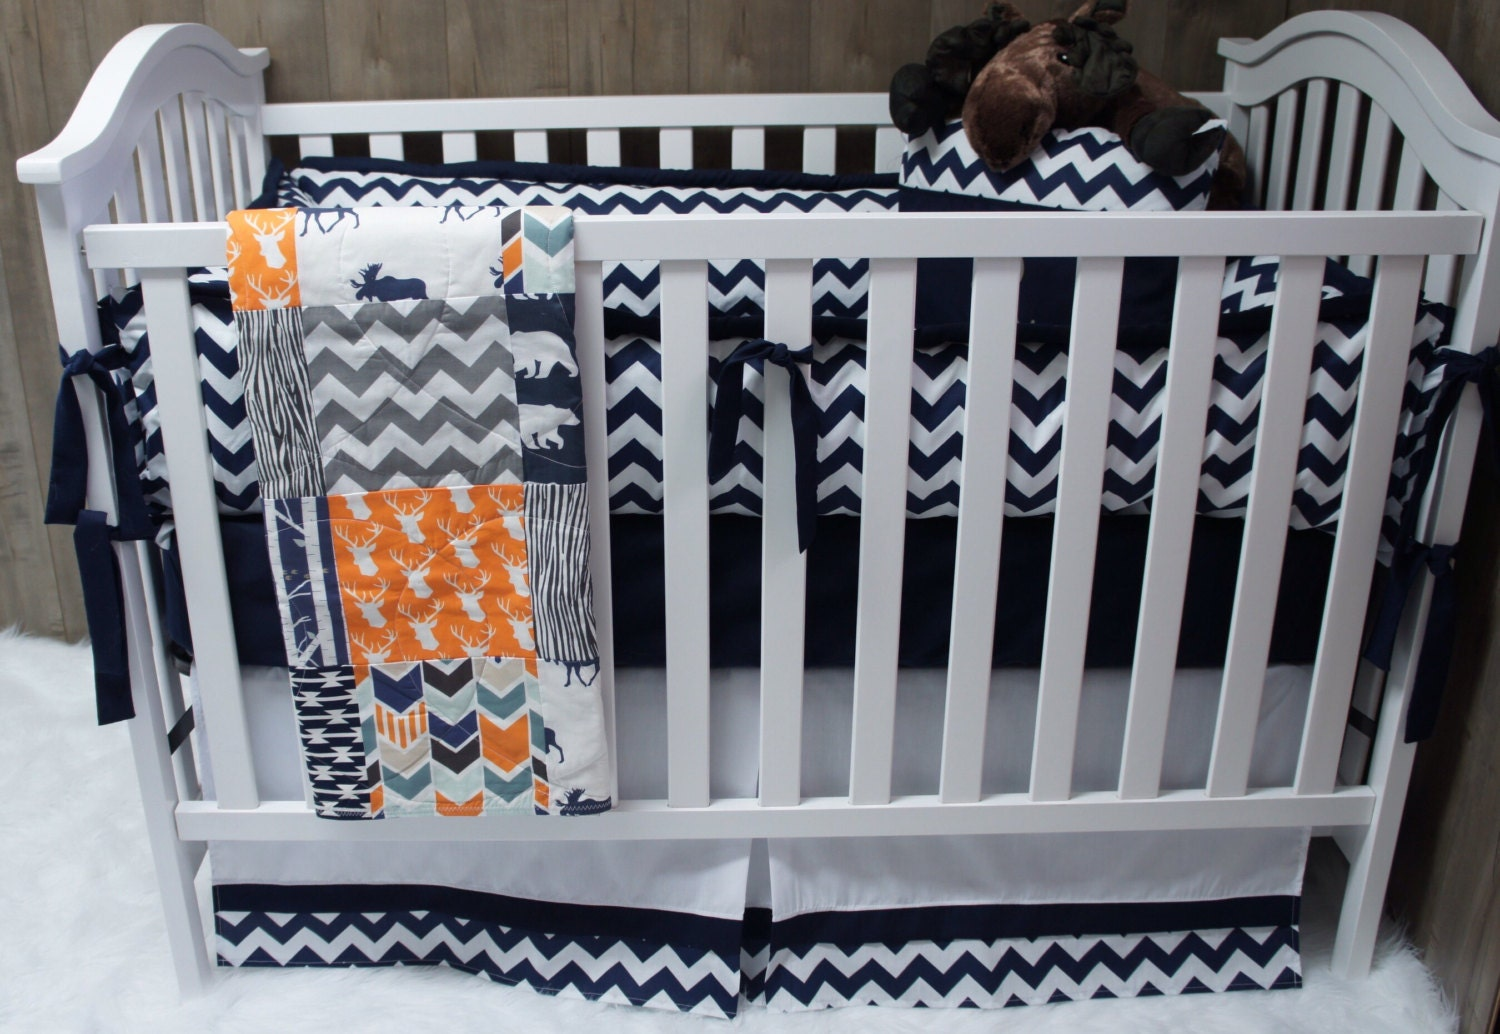 Baby cribs in ghana - Baby Boy Nursery Bedding Set Baby Woodland Deer Moose Arrow Realtree Camo Chevron Baby Bedding Crib Bedding Toddler